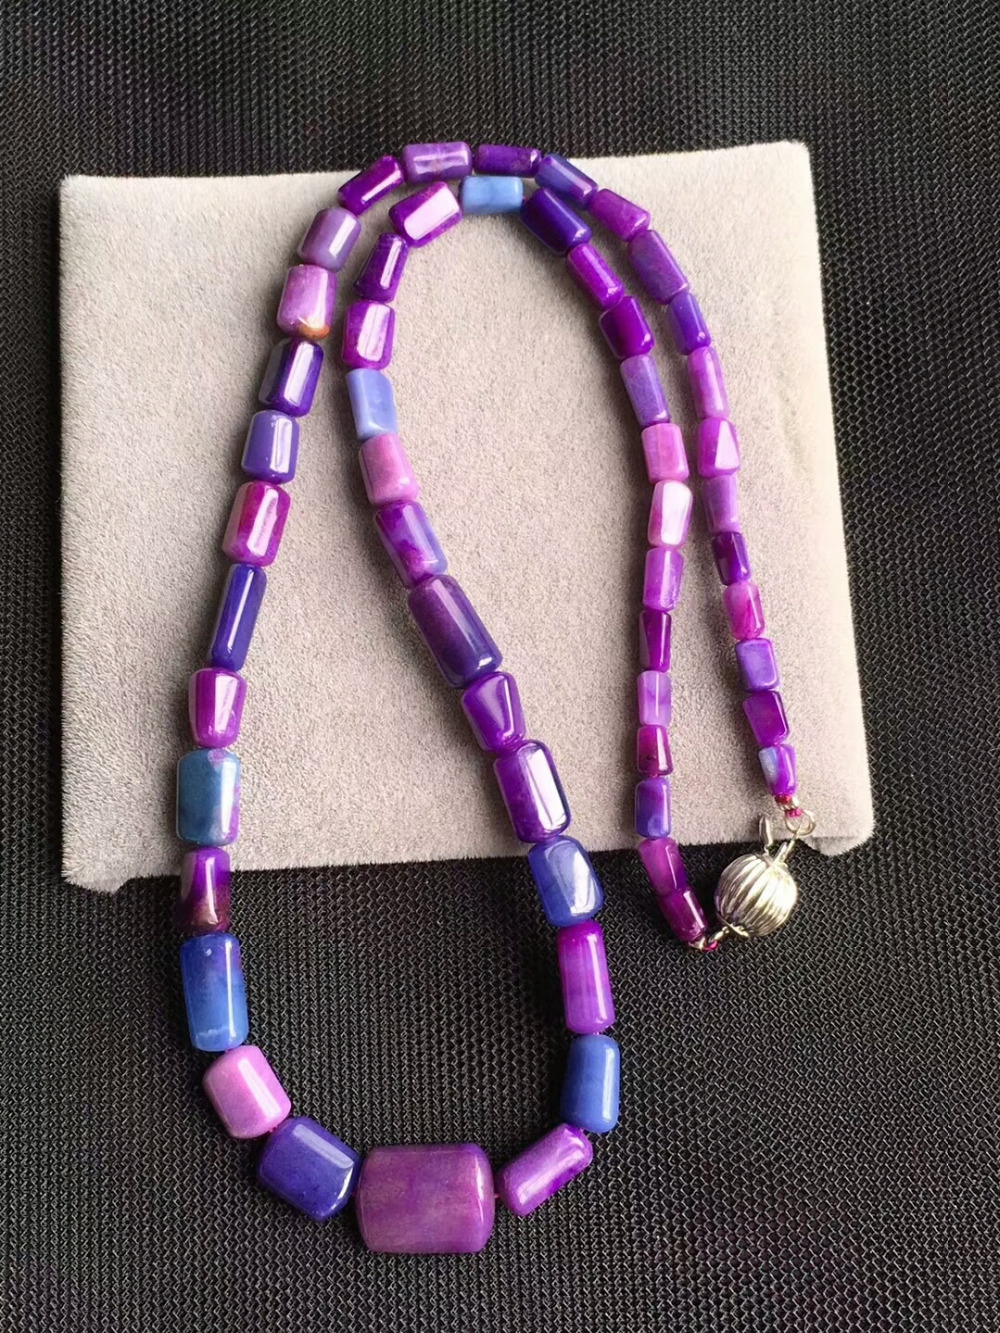 Genuine Natural Blue Pink Sugilite Gemstone South African Crystal Barrel Beads Woman Necklaces 10mm AAAAA Certificate